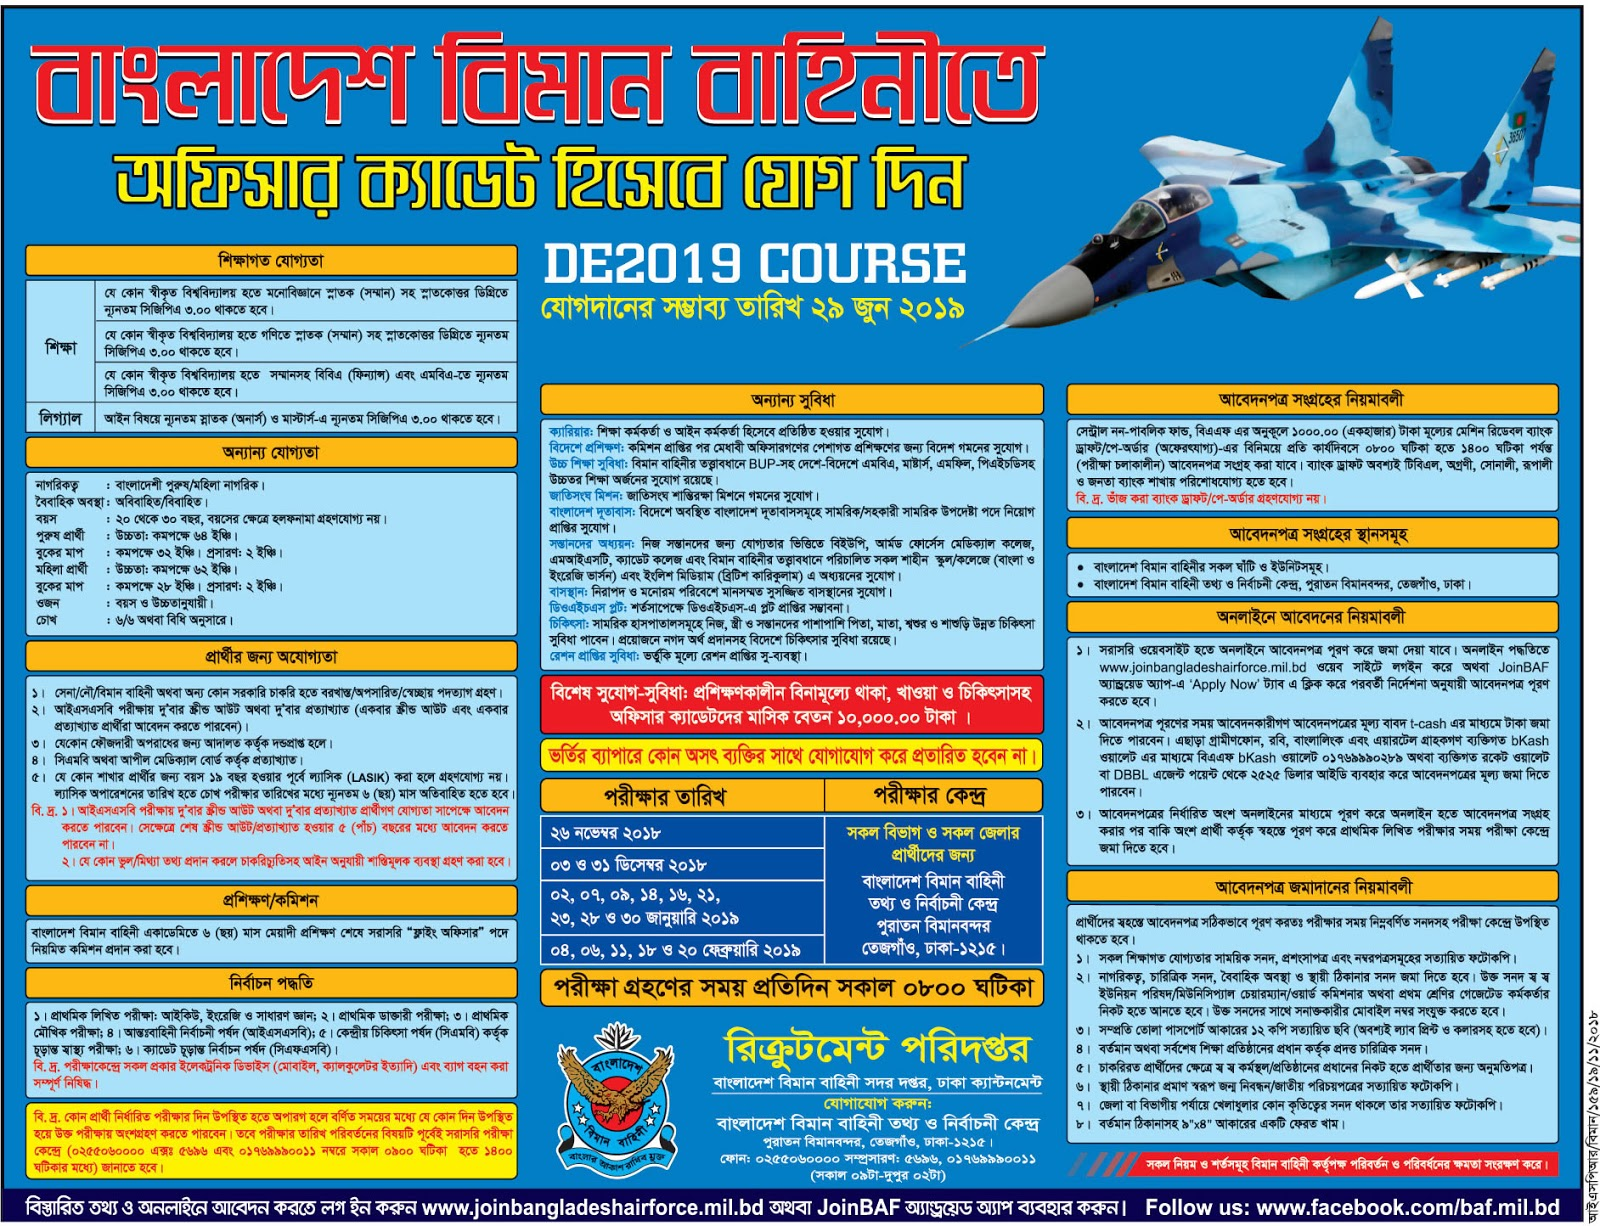 Bangladesh Air Force Officer Cadet DE2019 Batch Recruitment Circular 2018